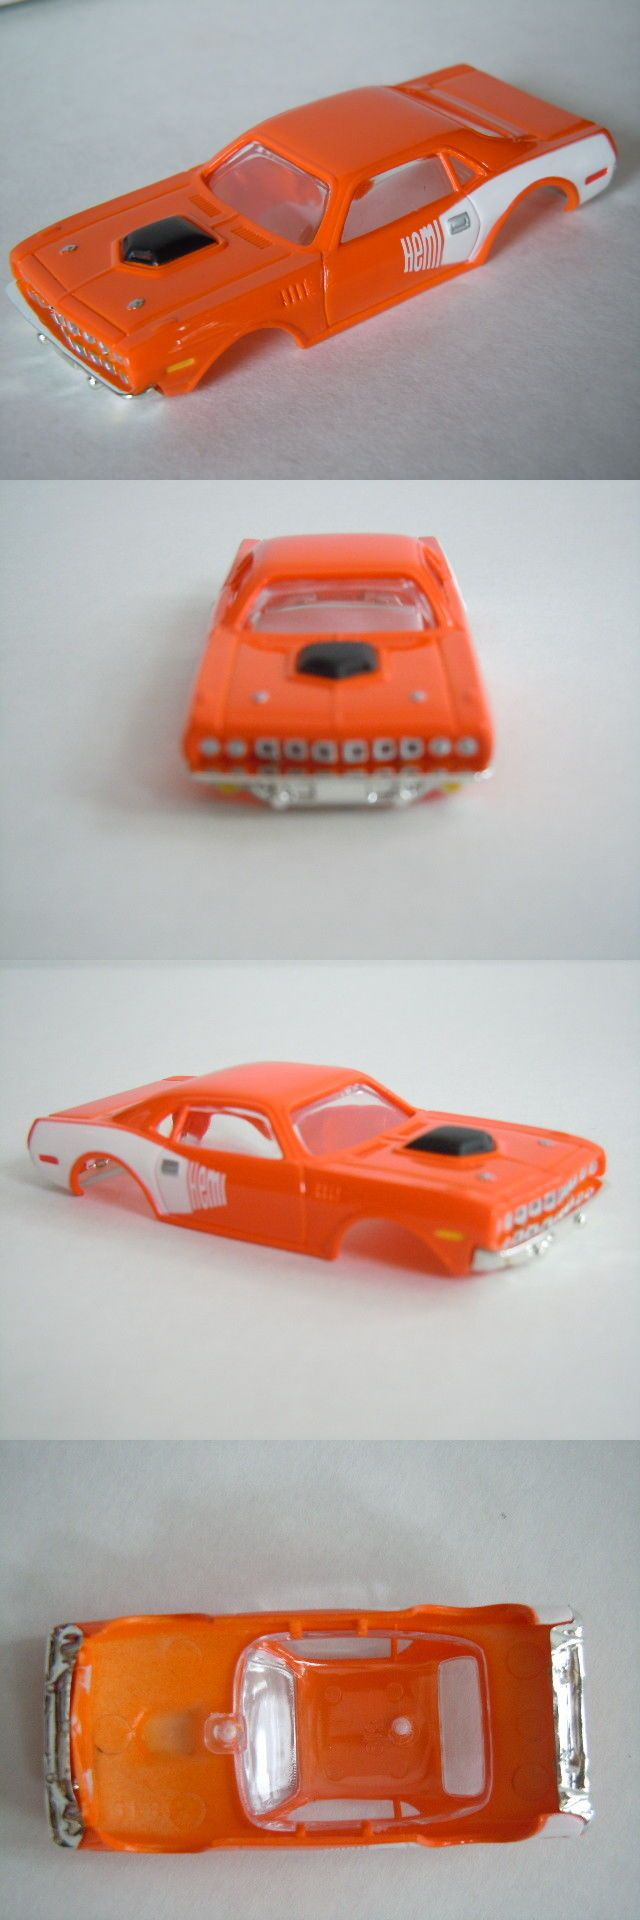 Ho Scale 164787 New 1971 Hemi Cuda Snap Fit Slot Car Body Fits Afx Tomy Auto World Buy It Now Only 19 71 On Ebay Scale Slot Cars Hemi Cuda Body Fit